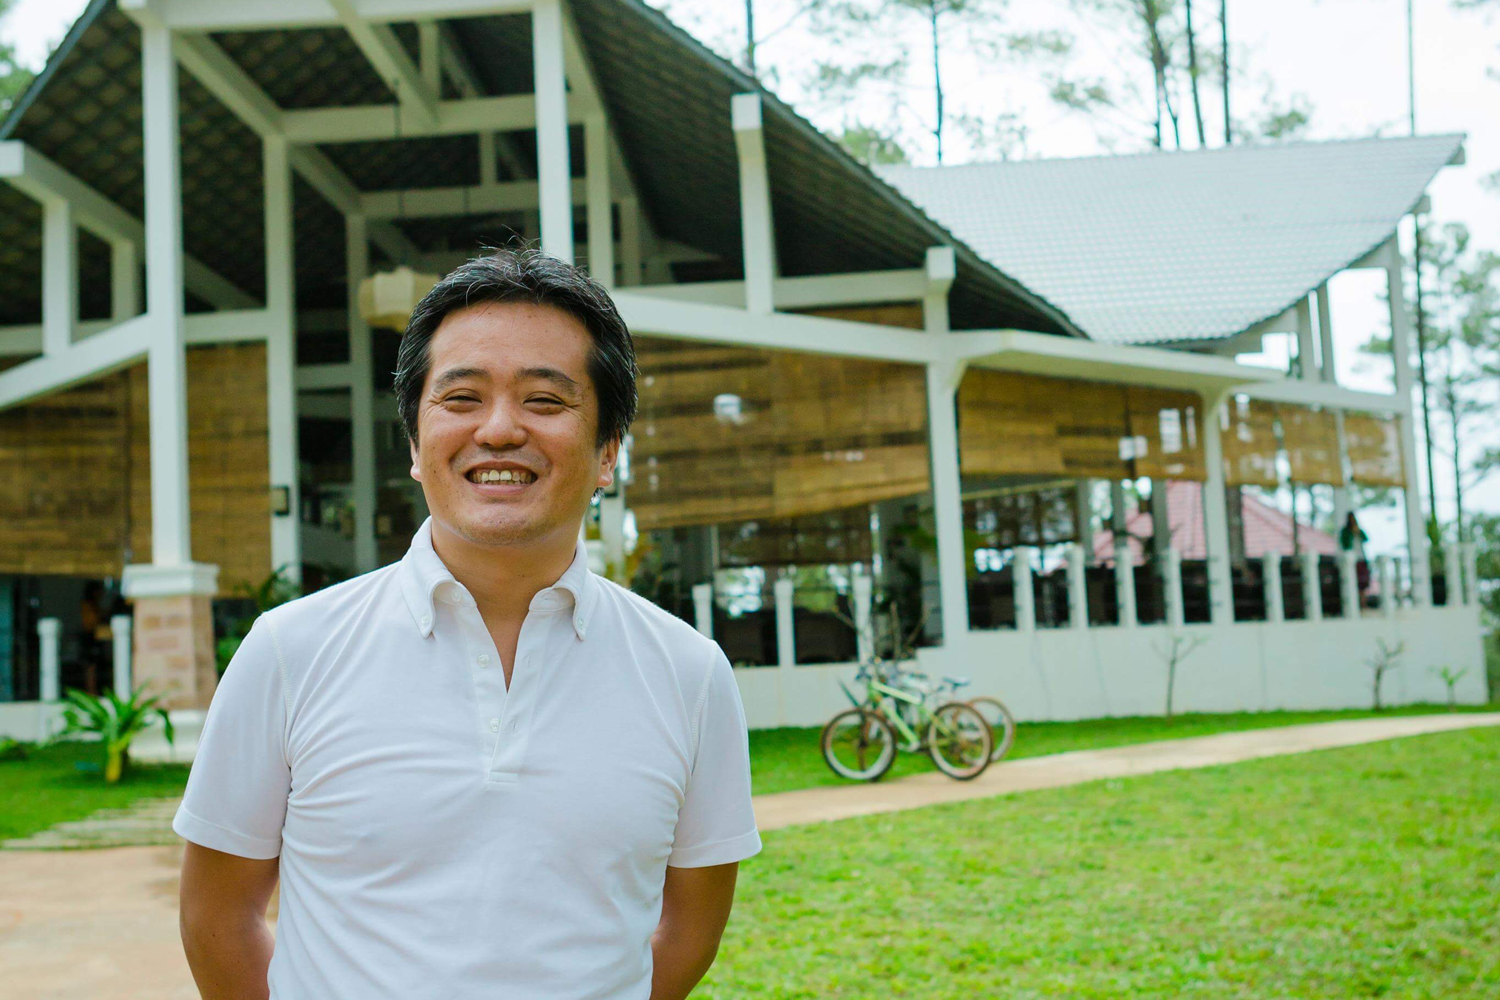 From salaryman to college president: Takeshi Izuka empowers tech education in Cambodia